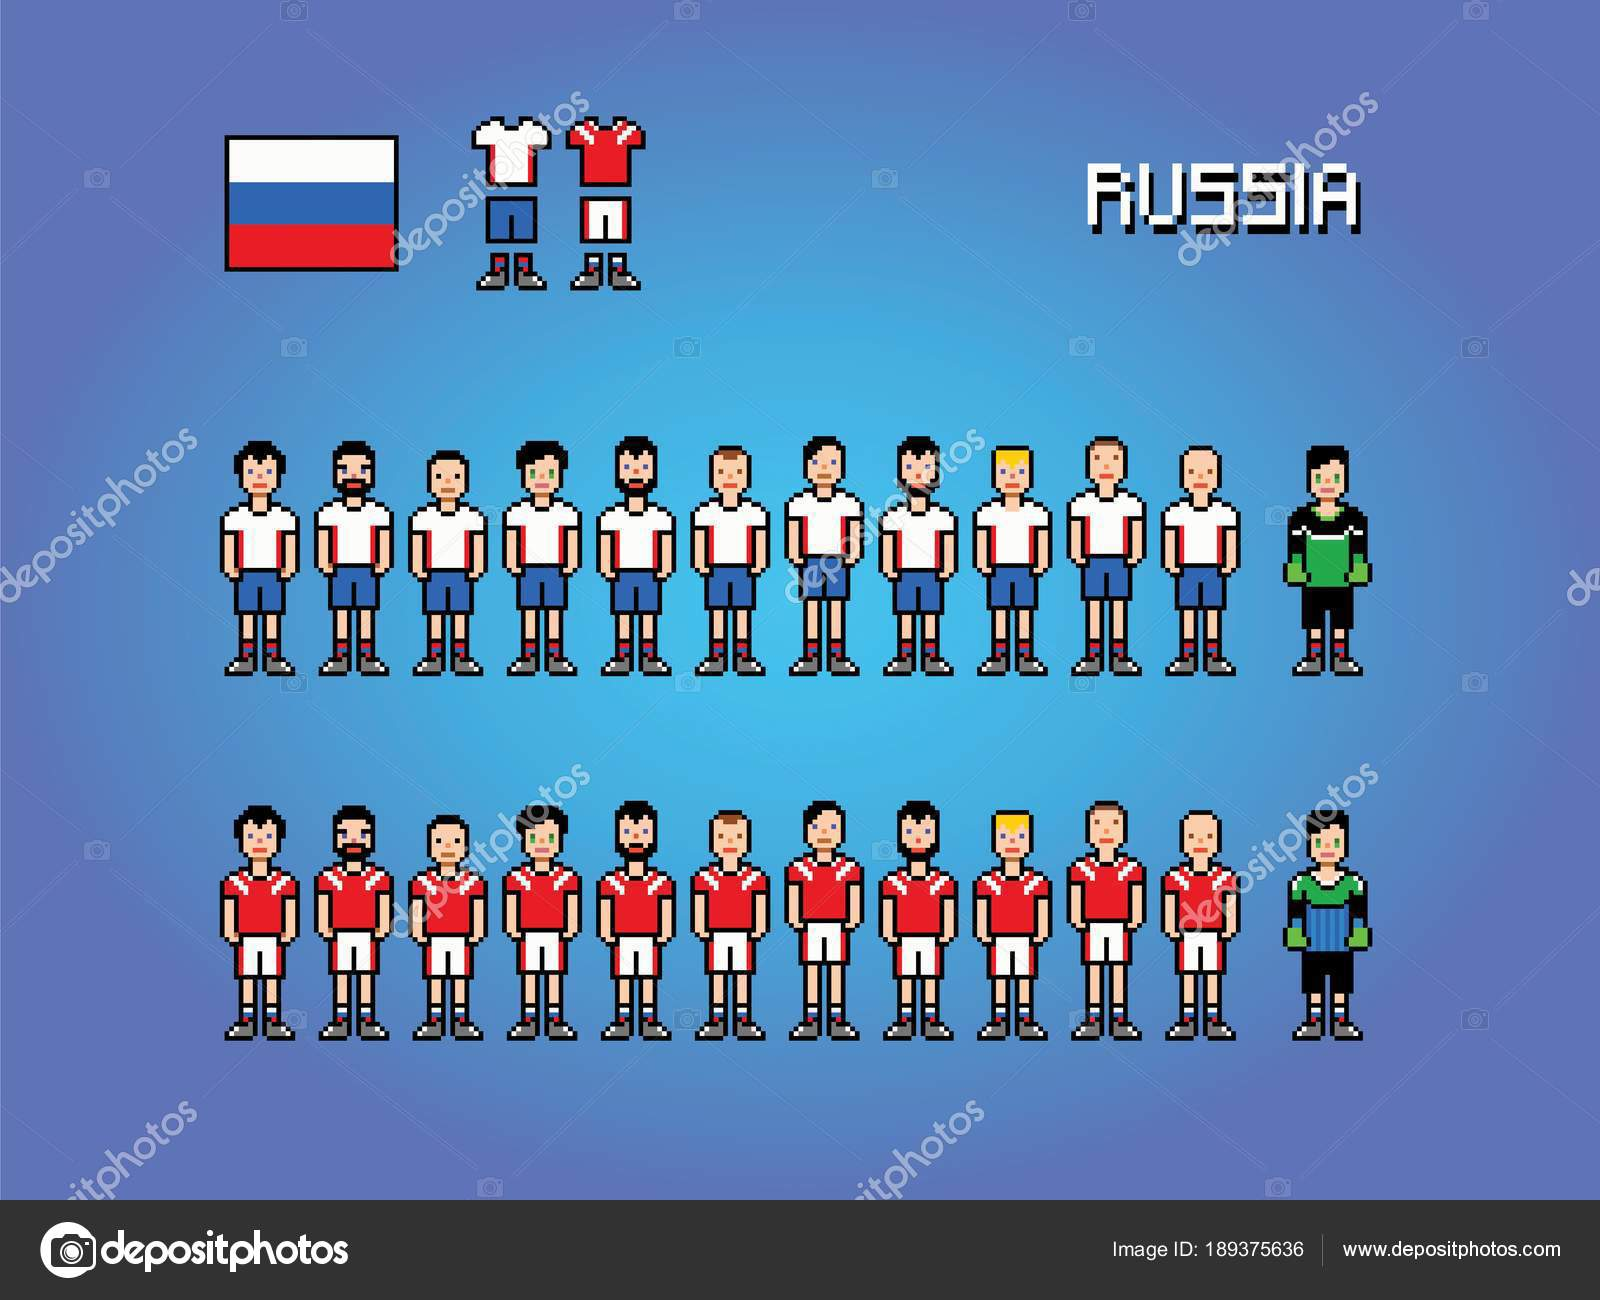 Russia Football Team Player Uniform Pixel Art Game